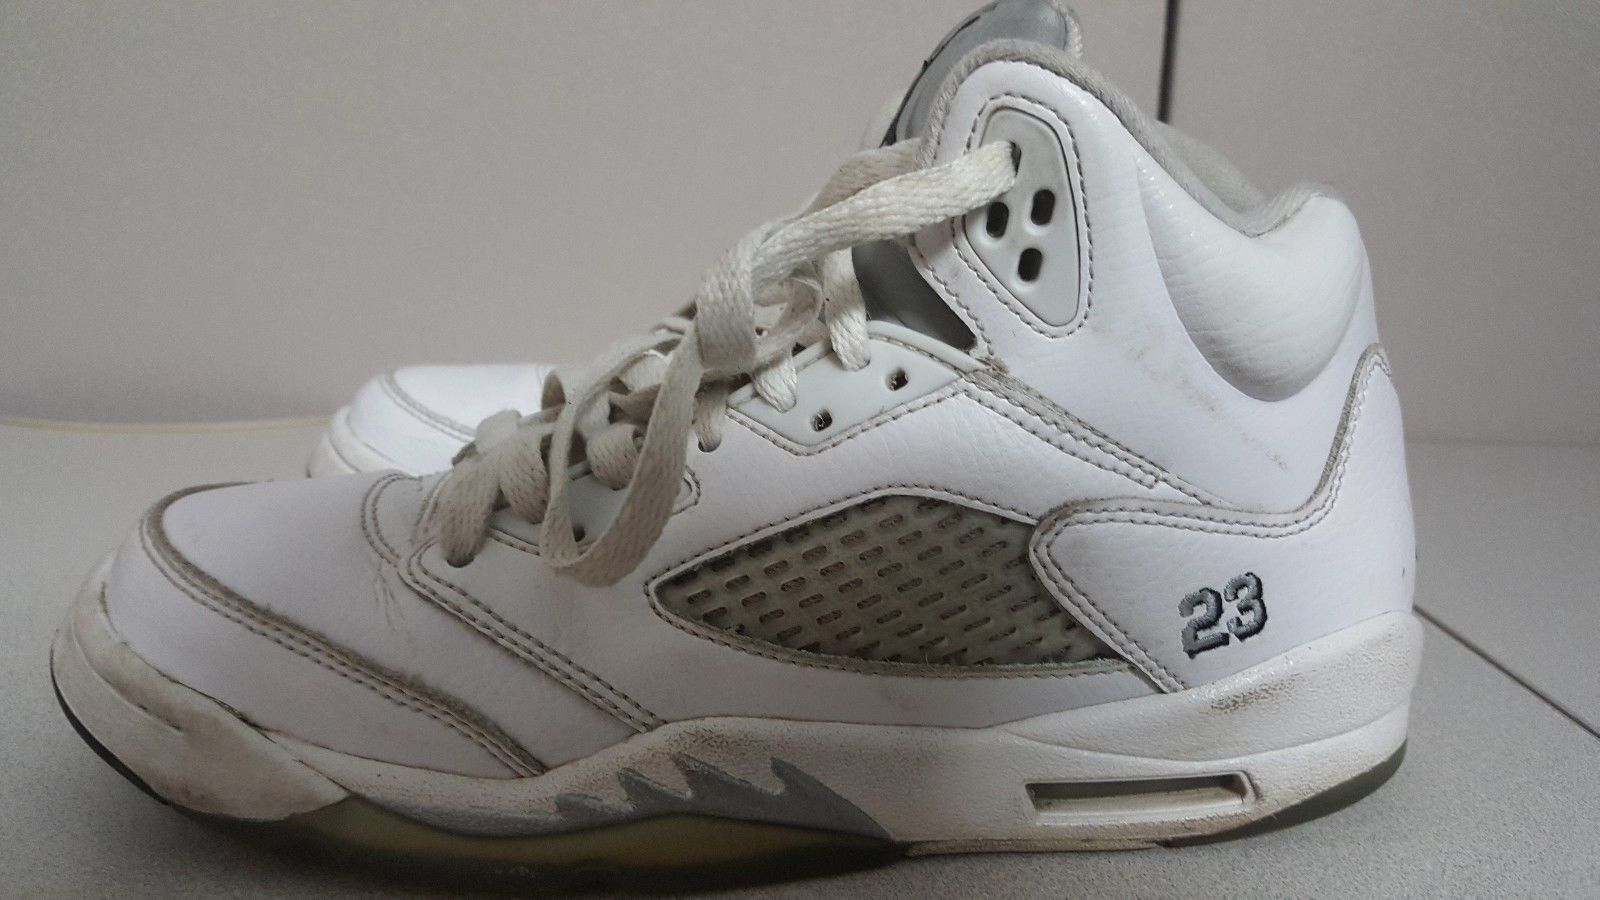 finest selection fd4a6 a5082 AIR JORDAN 5 V Retro BG White Basketball Shoe Pre Owned Size 5.5 440888-130